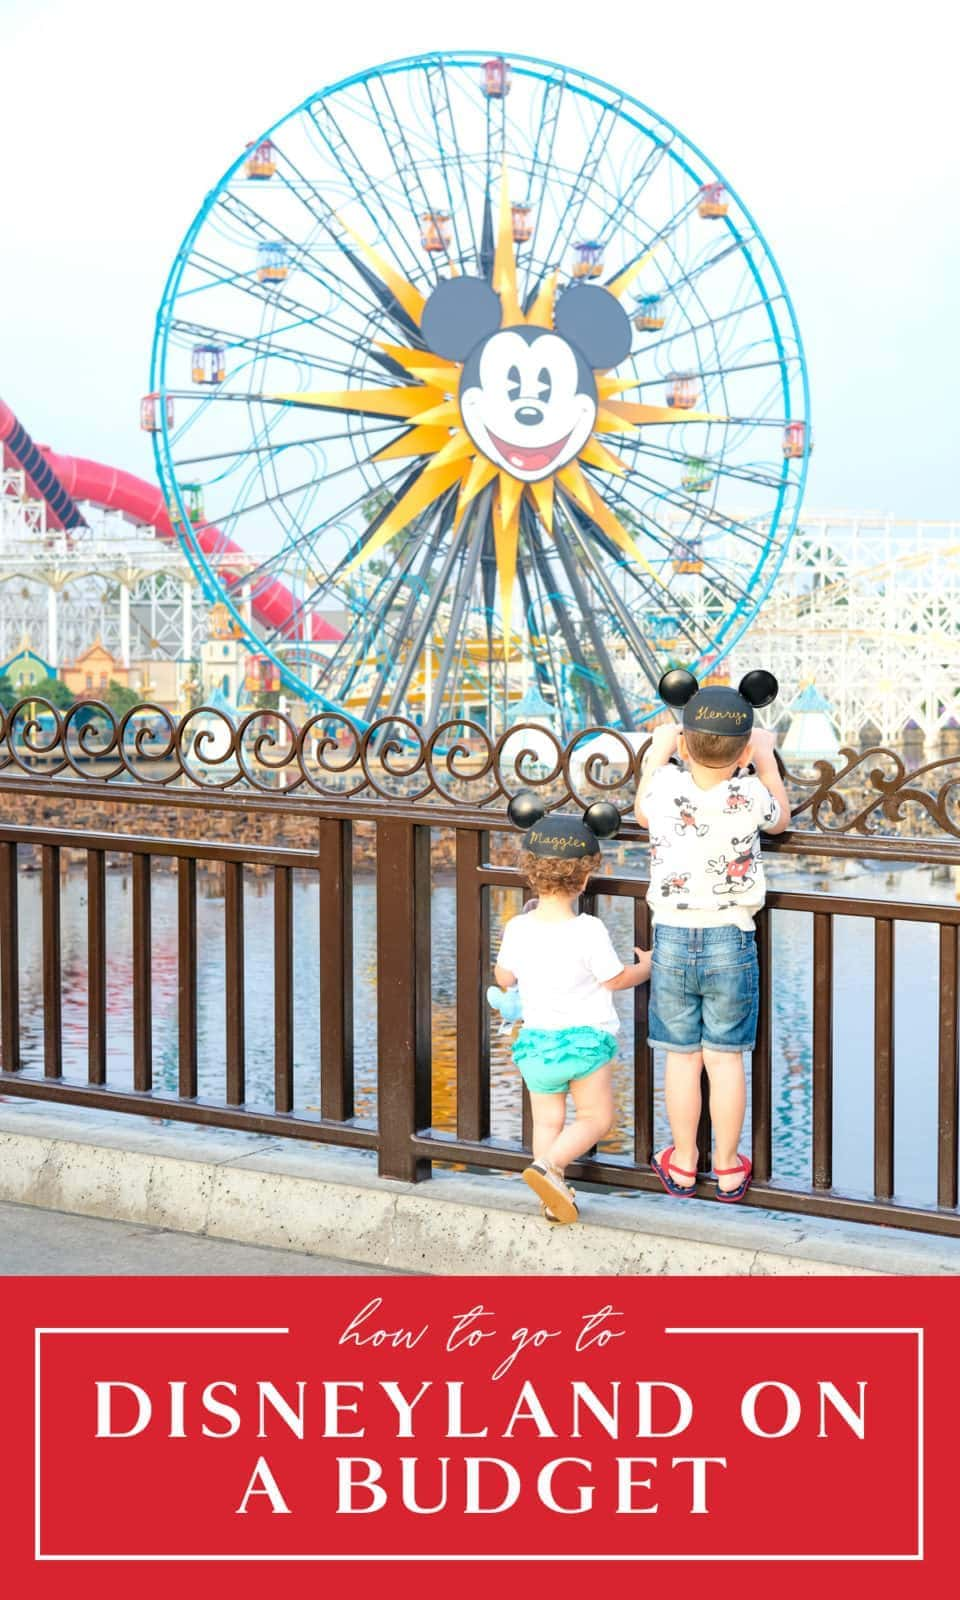 How to go to Disneyland on a budget